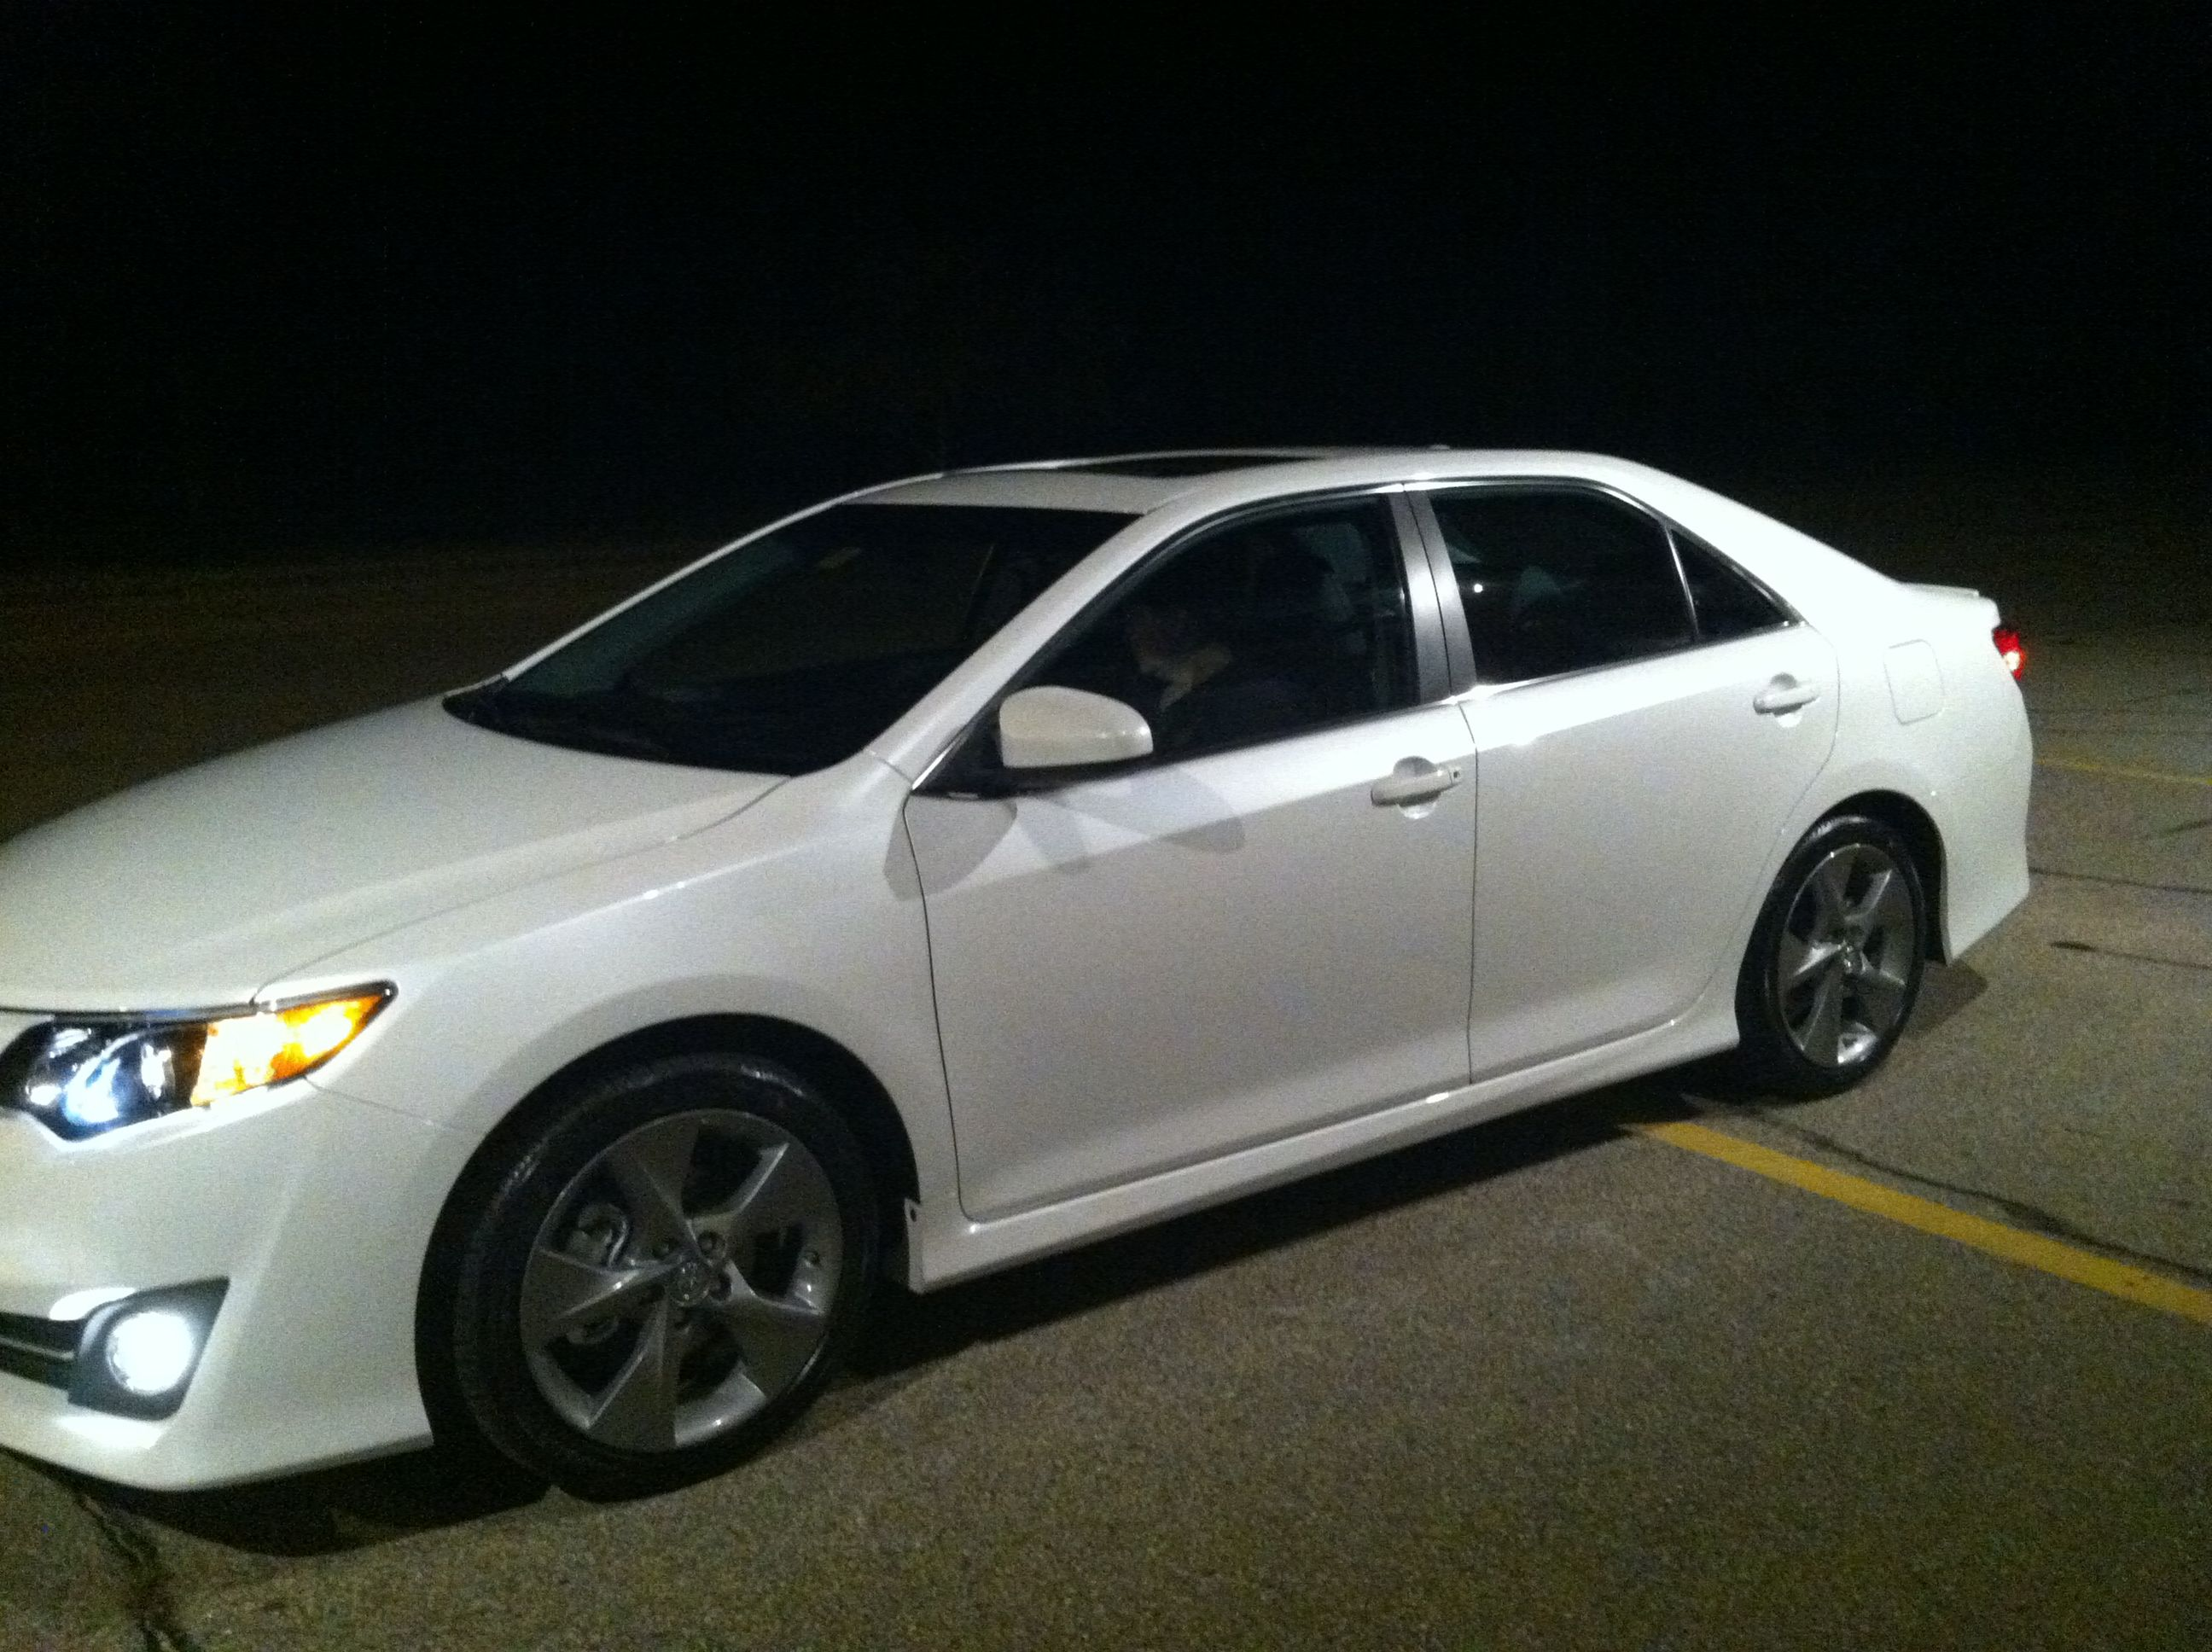 2013 Toyota Camry SE sport limited edition💜💜